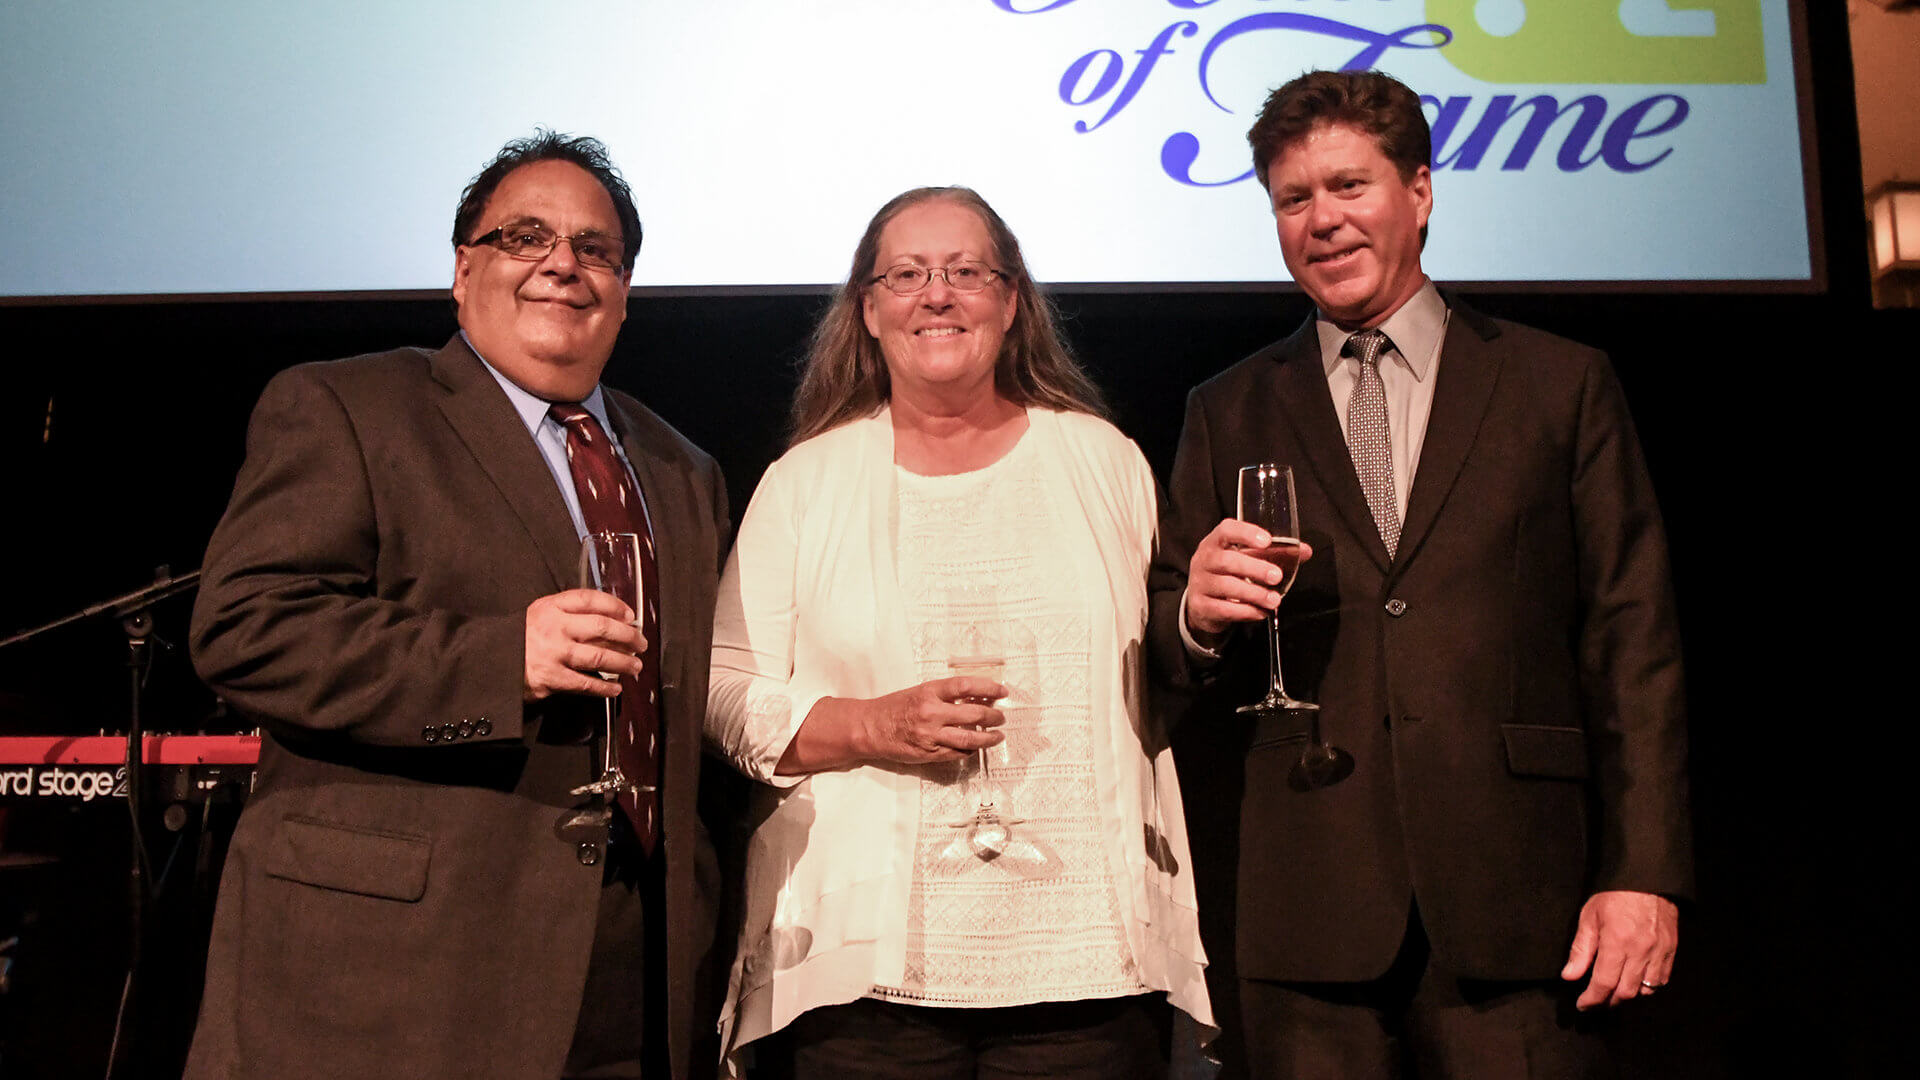 Newest Hall of Famers inducted in special ceremony